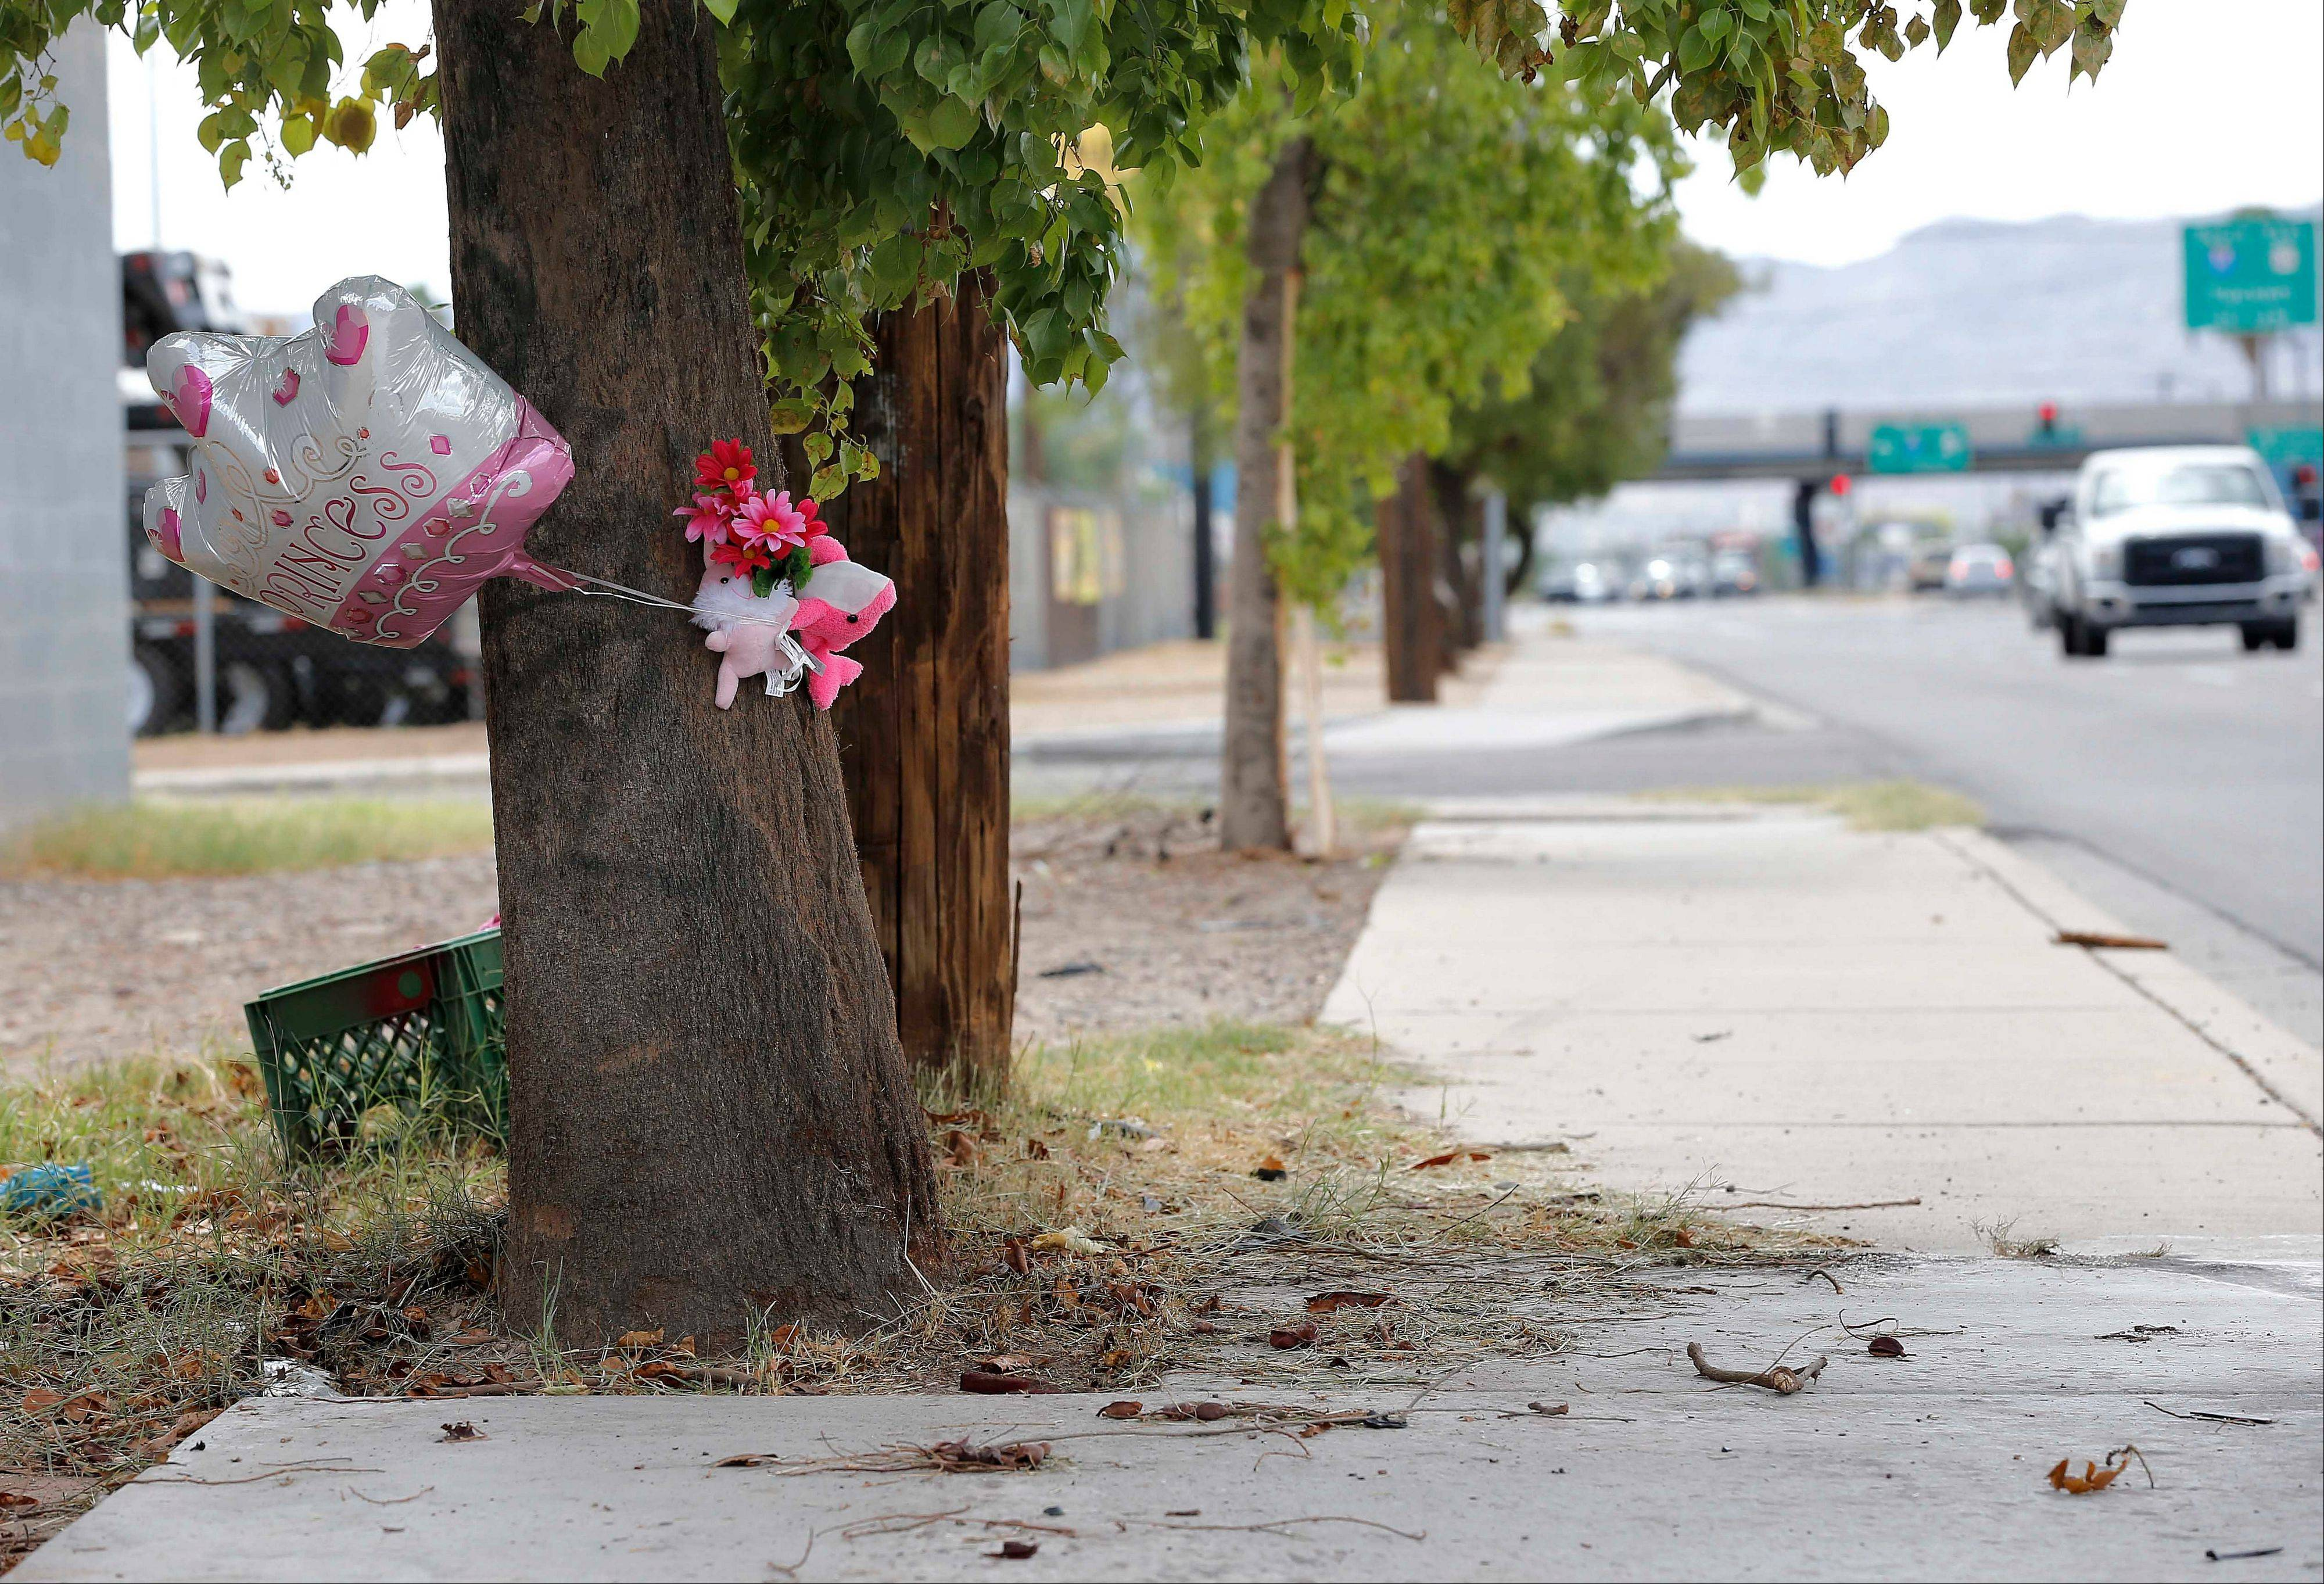 A makeshift memorial on a tree is shown, Thursday, Aug. 29, 2013, in Phoenix. An 8-year-old boy was driving his mother's car on a nighttime joy ride with his 6-year-old sister when it crashed into a telephone pole, behind the tree, fatally injuring the girl, police said Thursday.